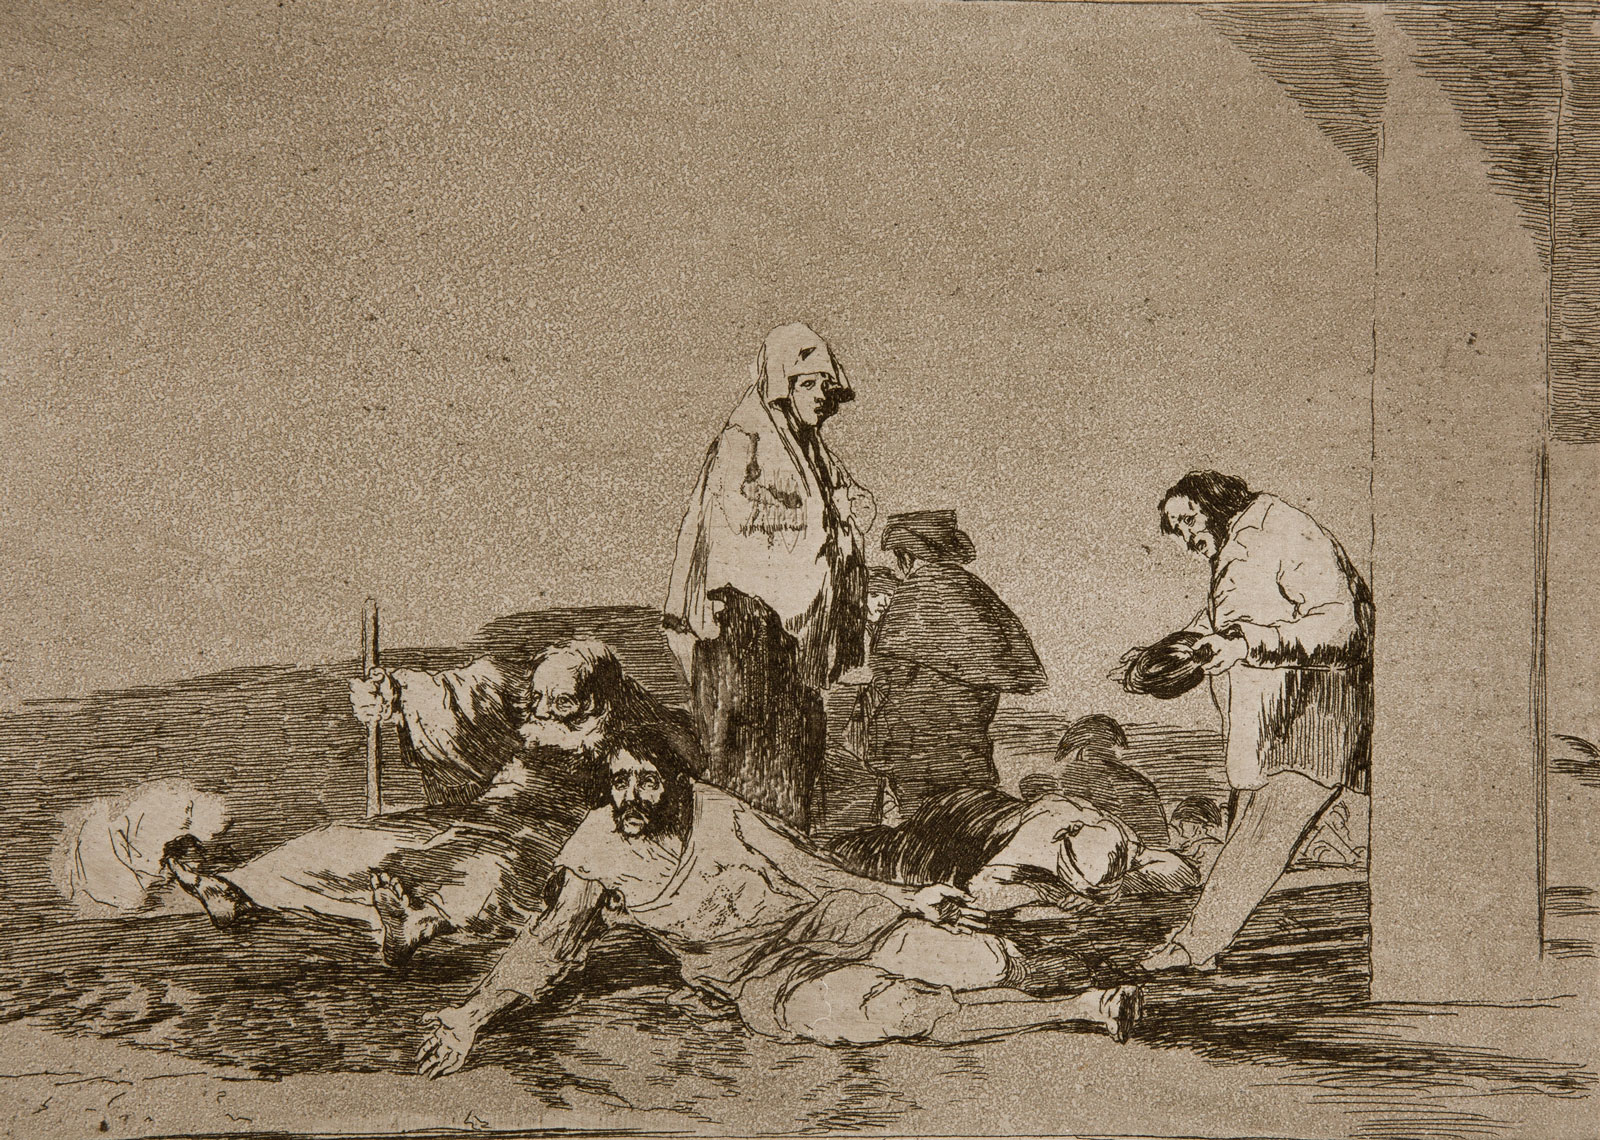 Francisco Goya: It's No Use Crying Out, 1810-1820